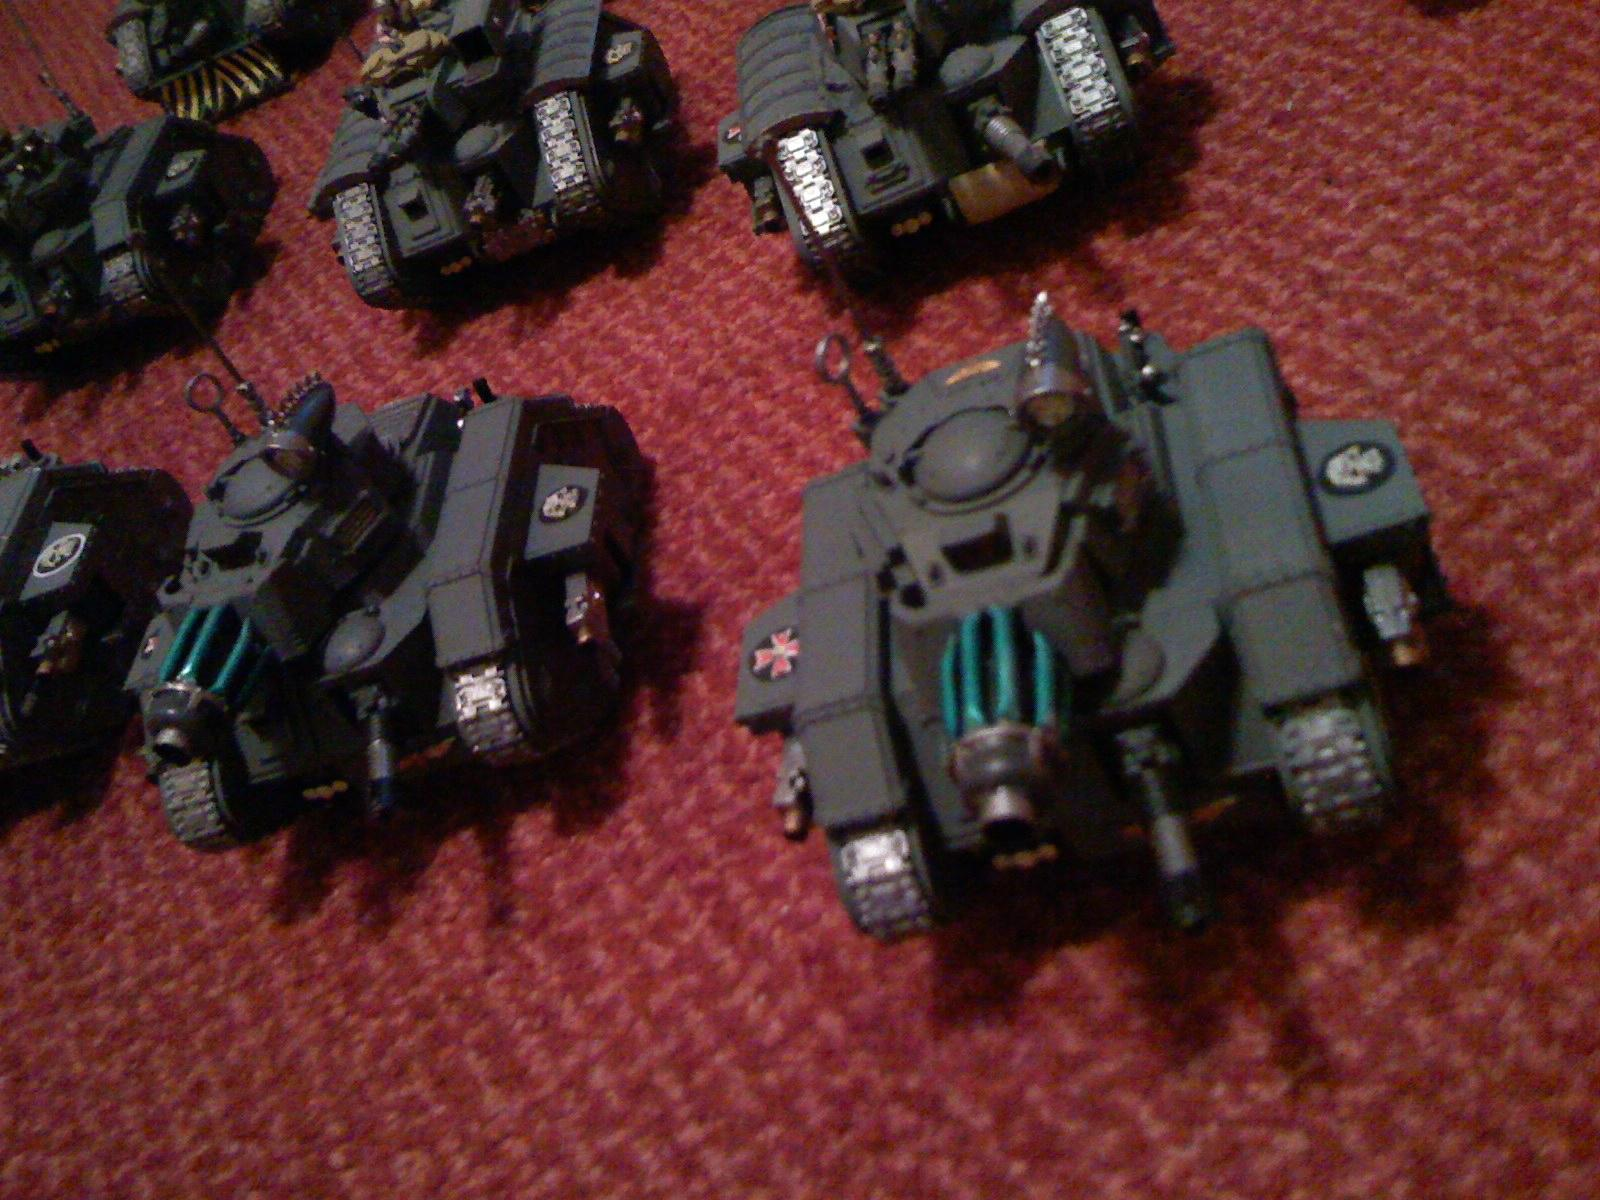 Armored Company, Executioner, Imperial Guard, Warhammer 40,000